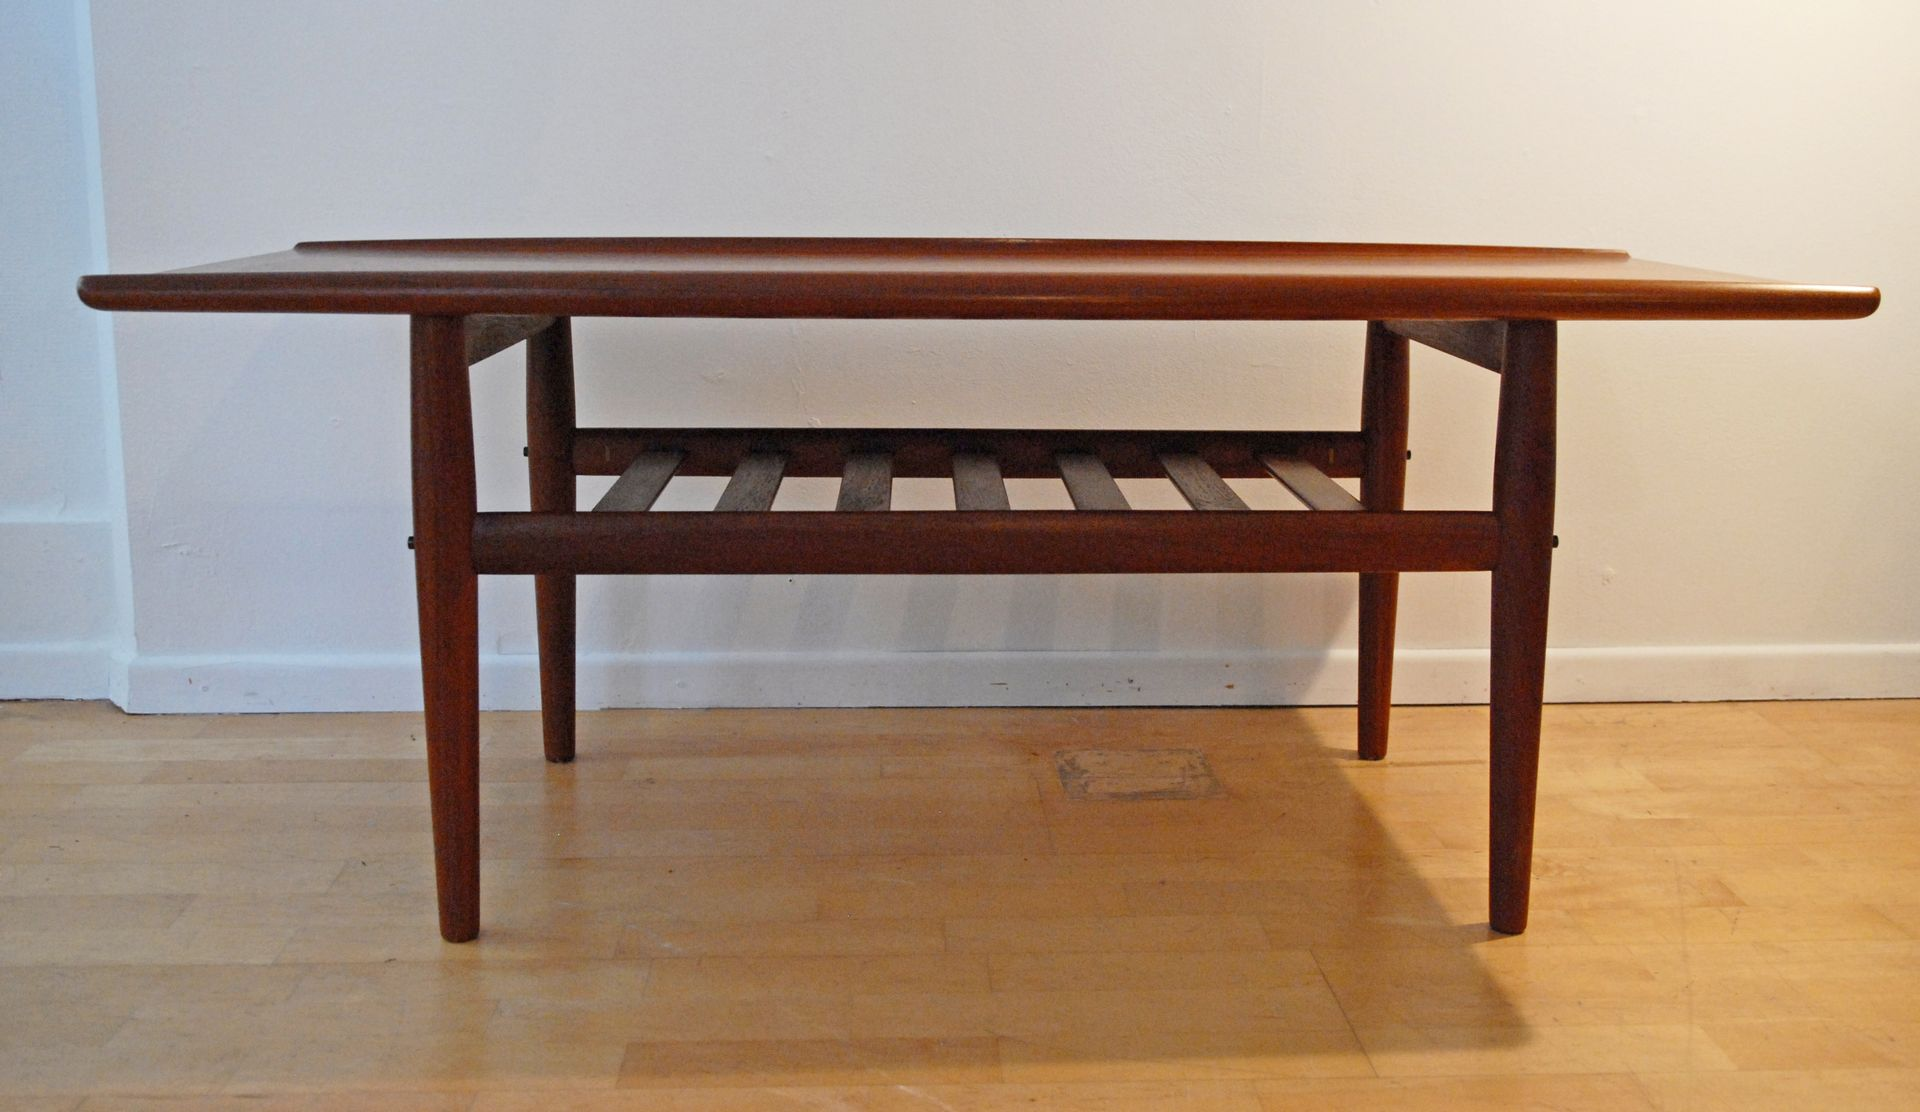 Danish Teak Coffee Table By Grete Jalk For Glostrup M Belfabrik 1960s For Sale At Pamono